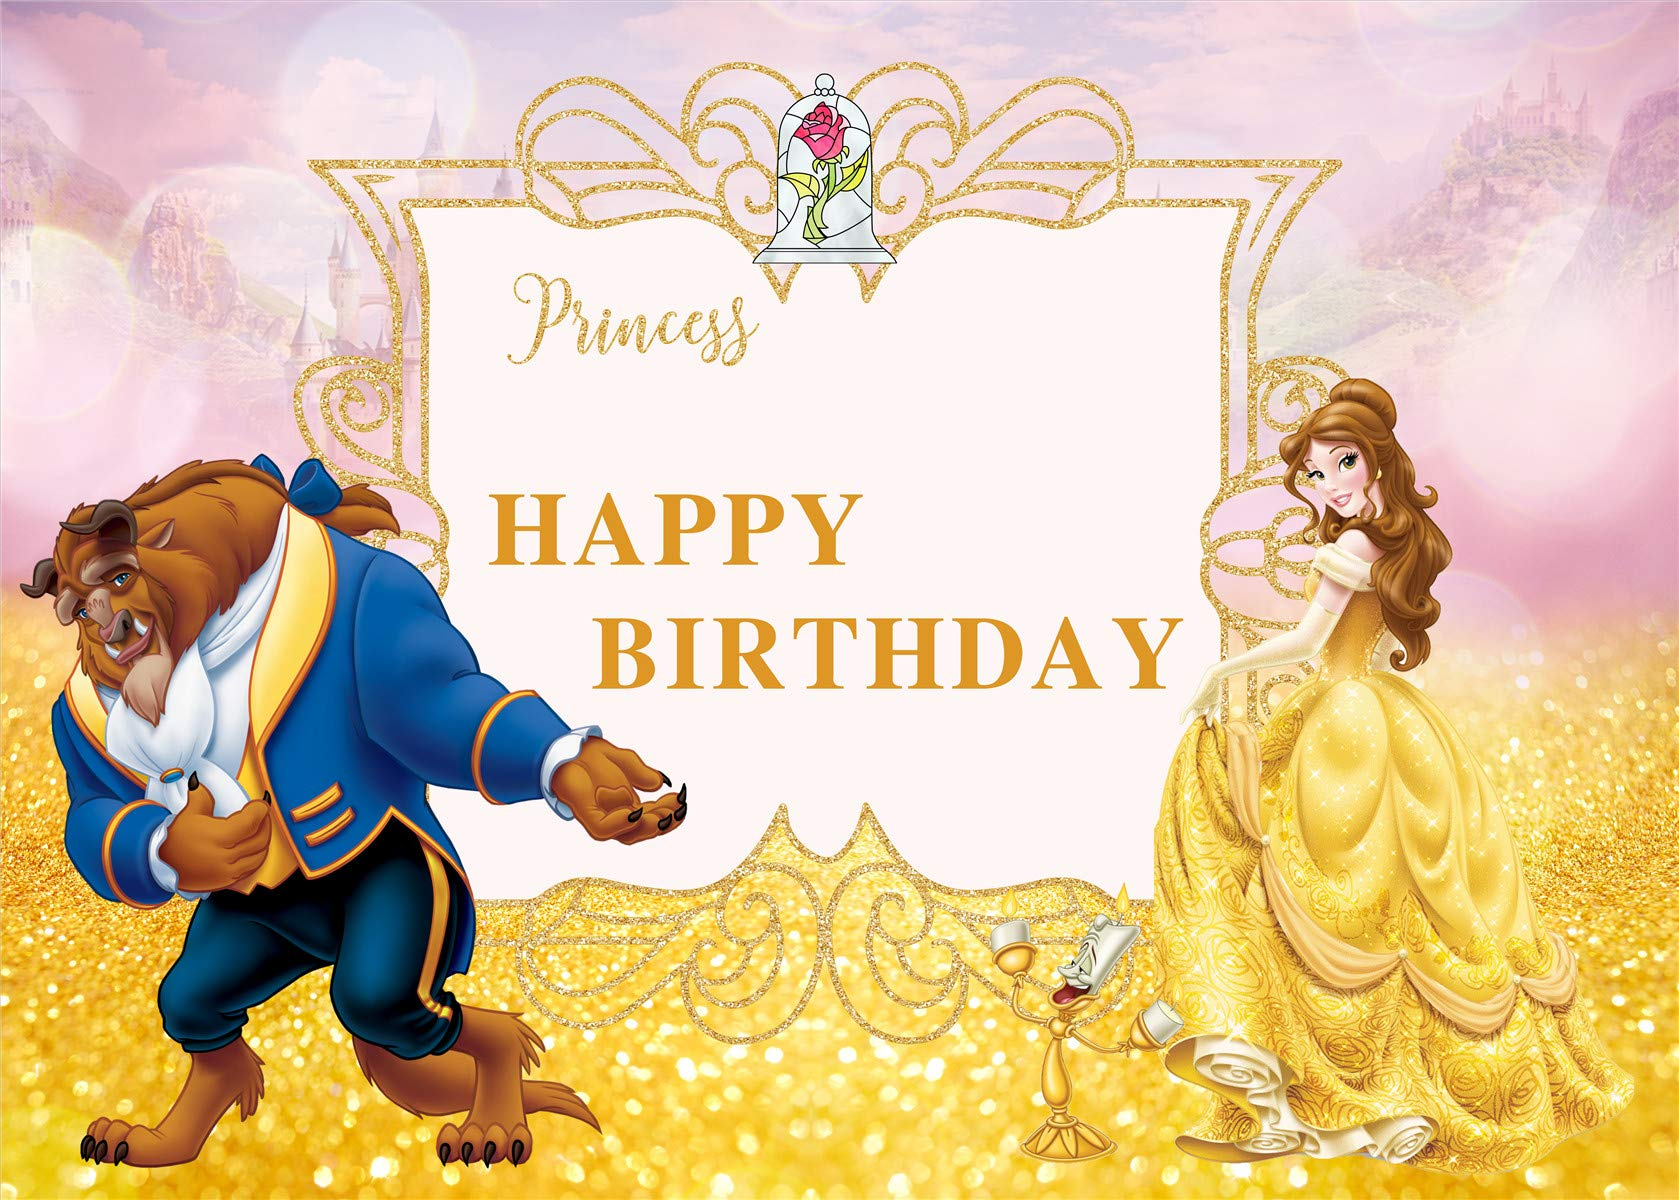 Happy Birthday Beauty and The Beast Background Photo Props Cartoon Character Pincess Wild Animal for Children Studio Birthday Party 7x5FT by Botong